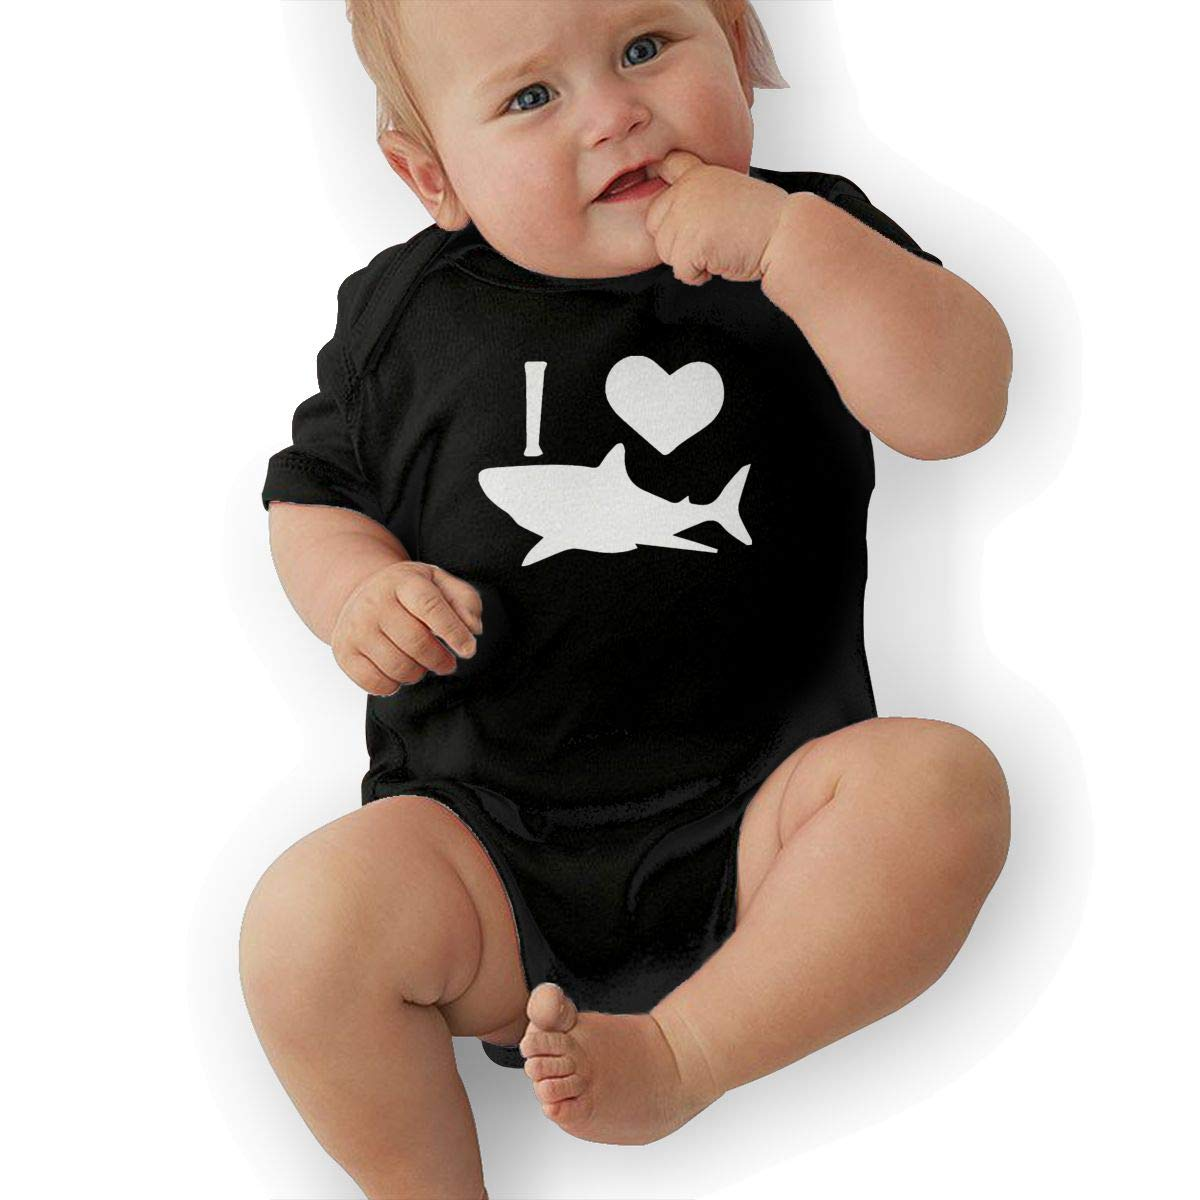 Short Sleeve Cotton Rompers for Unisex Baby Fashion I Love Shark 1 Playsuit